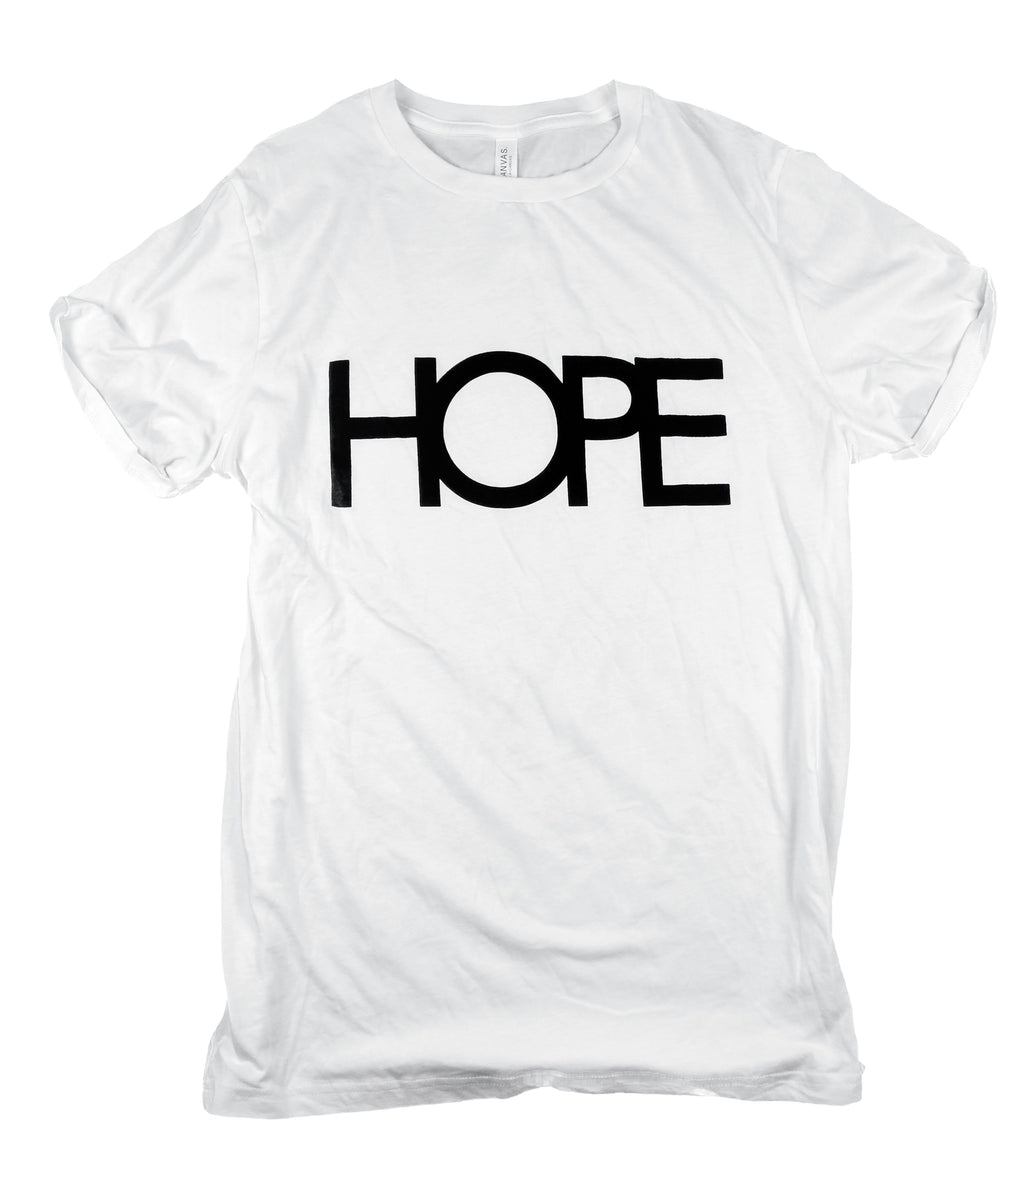 HOPE WHITE ROLLED SLEEVE T-SHIRT